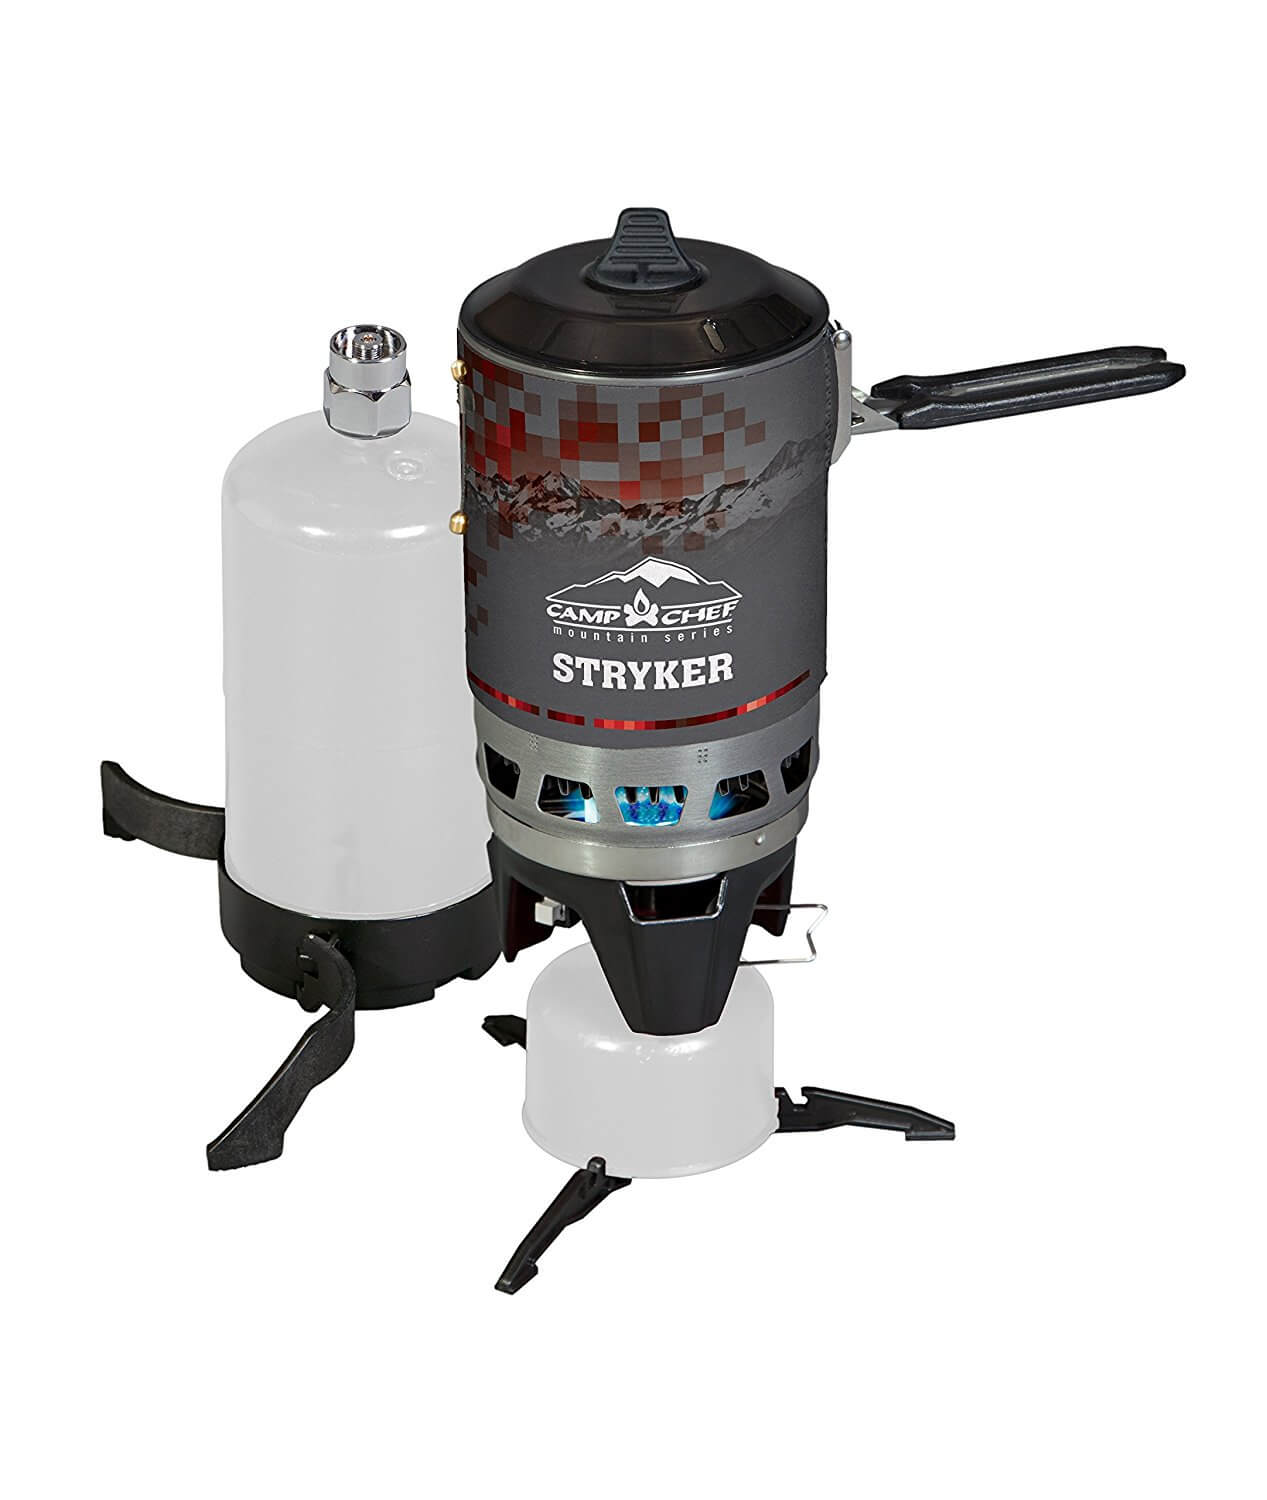 12. Camp Chef Mountain Series Stryker